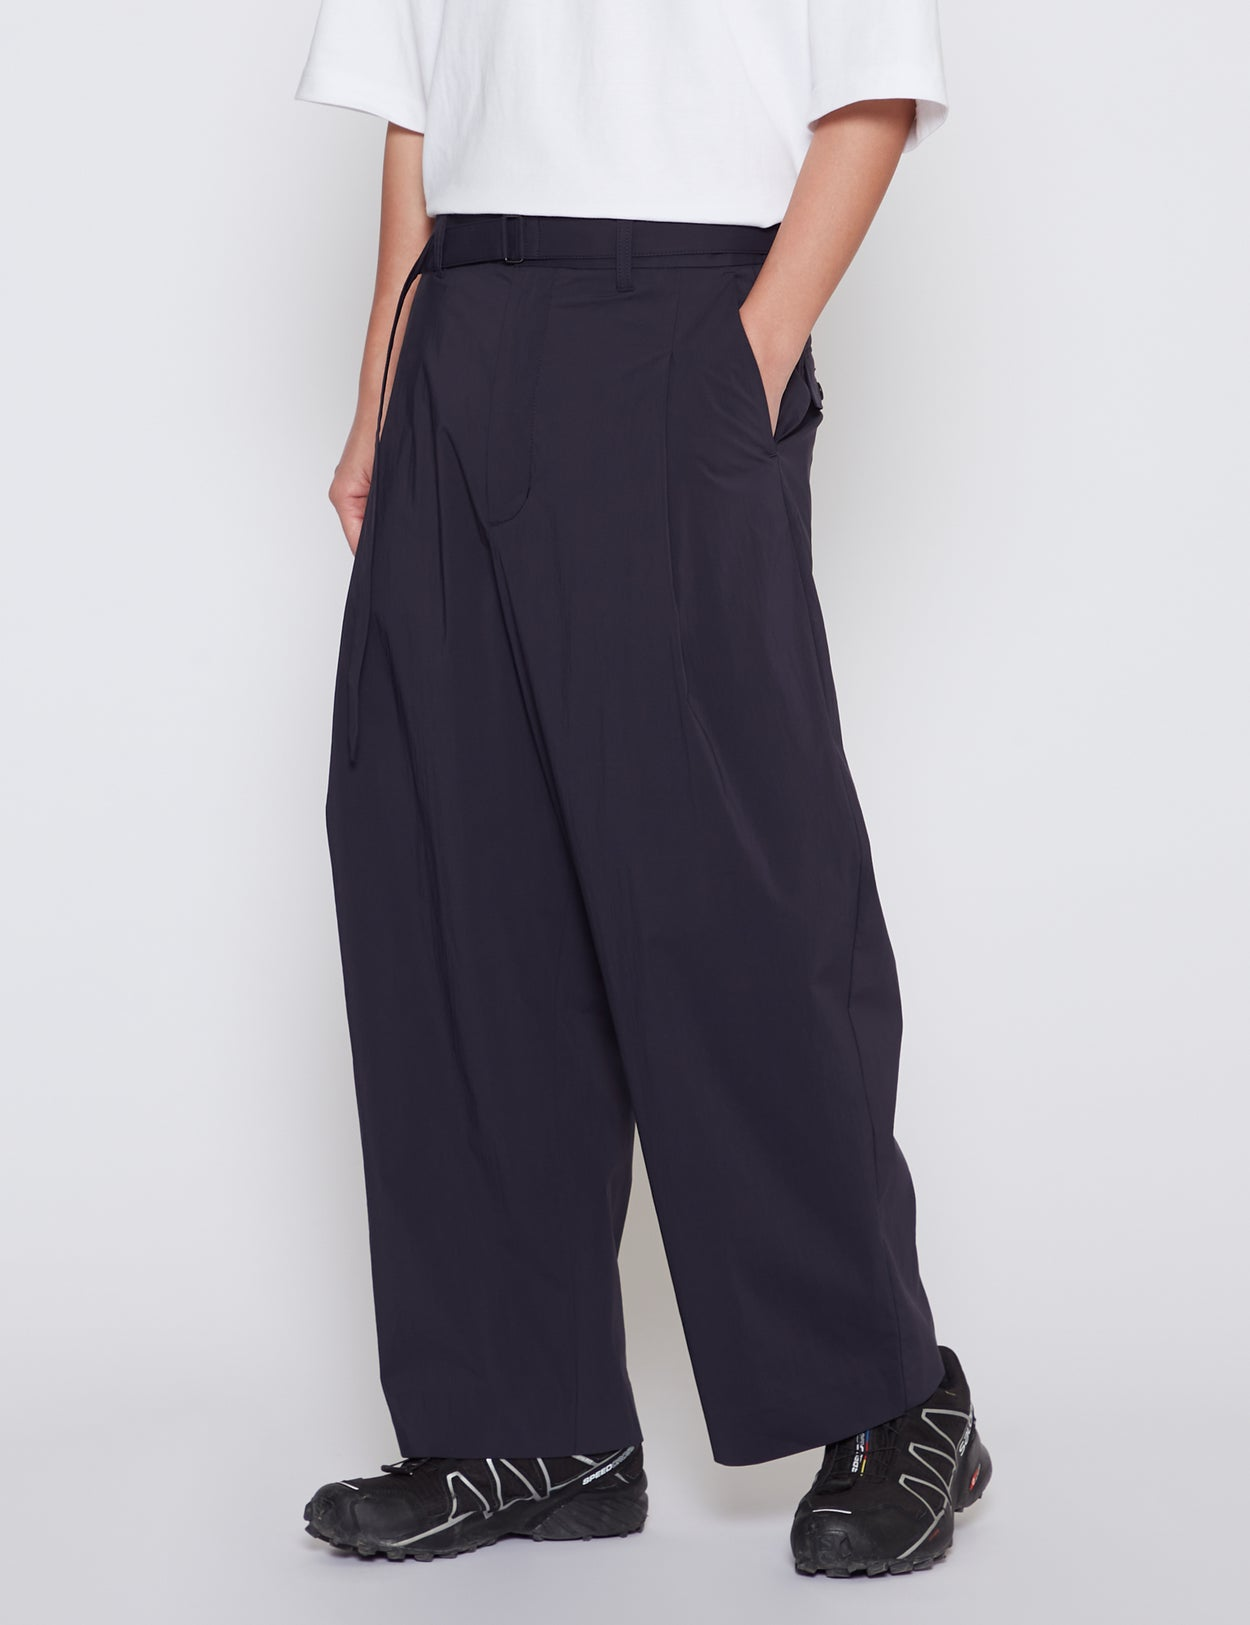 NAVY DRY WEATHER NYLON BELTED ONE TUCK PANTS